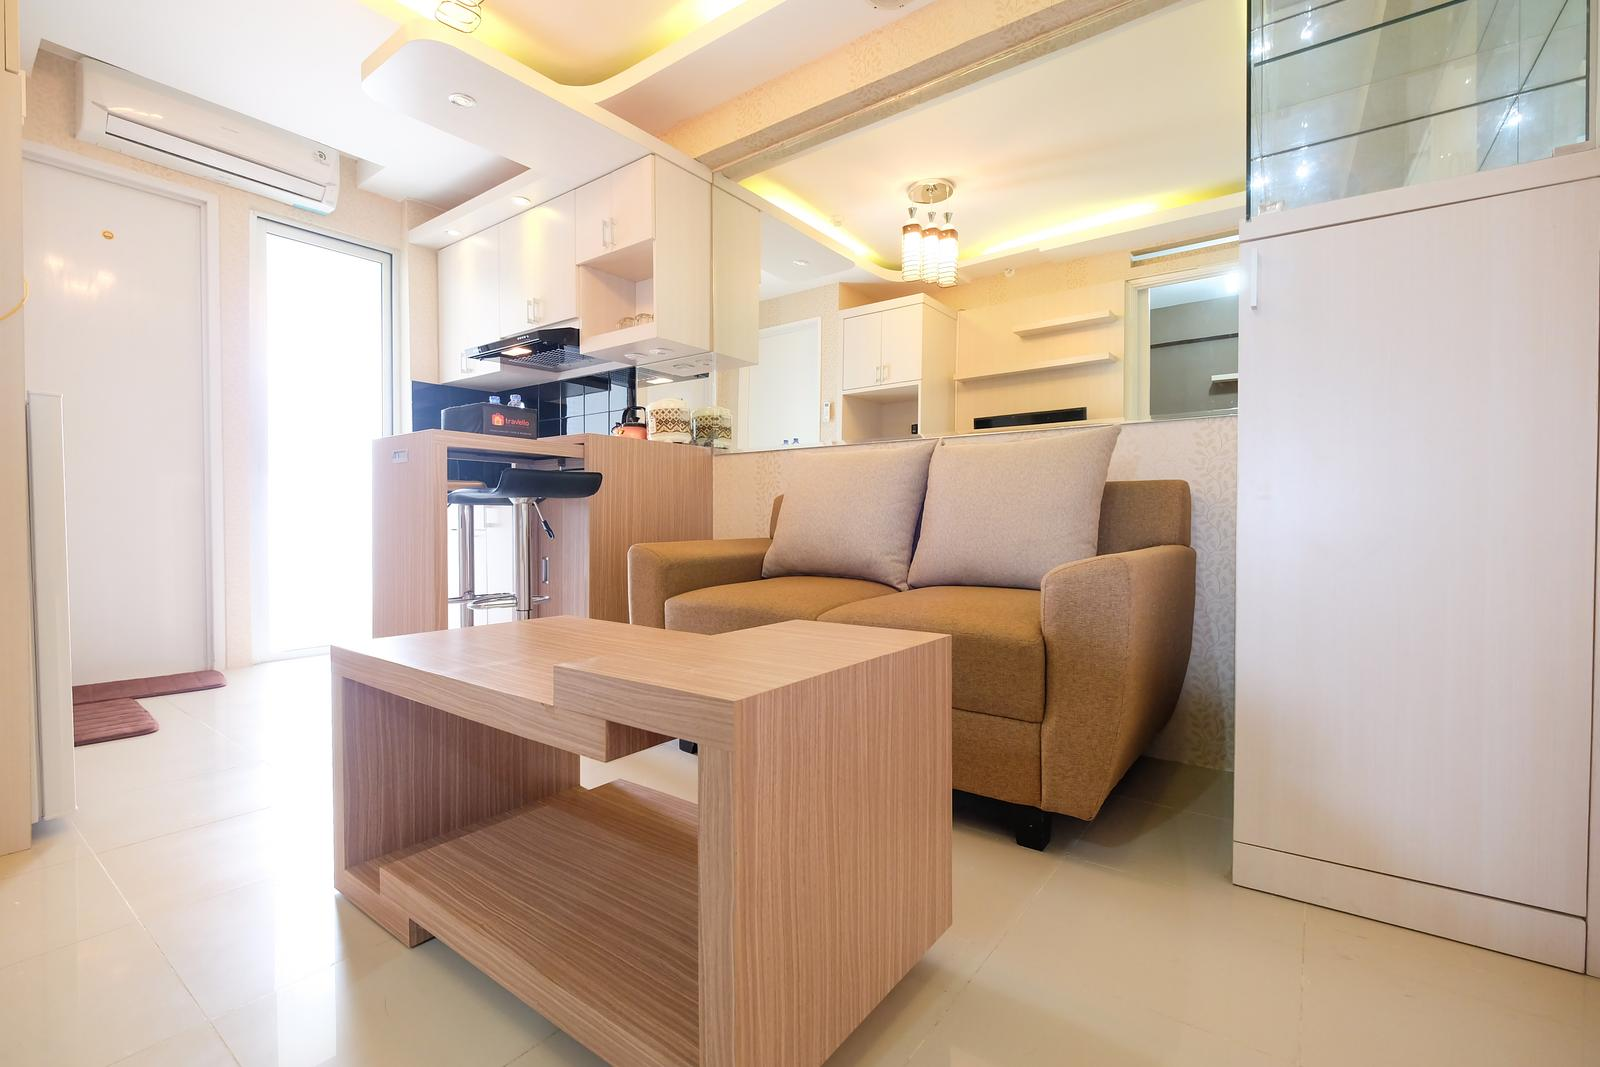 Bassura City Cipinang - Modern Minimalist 2 BR Bassura City Apartment By Travelio